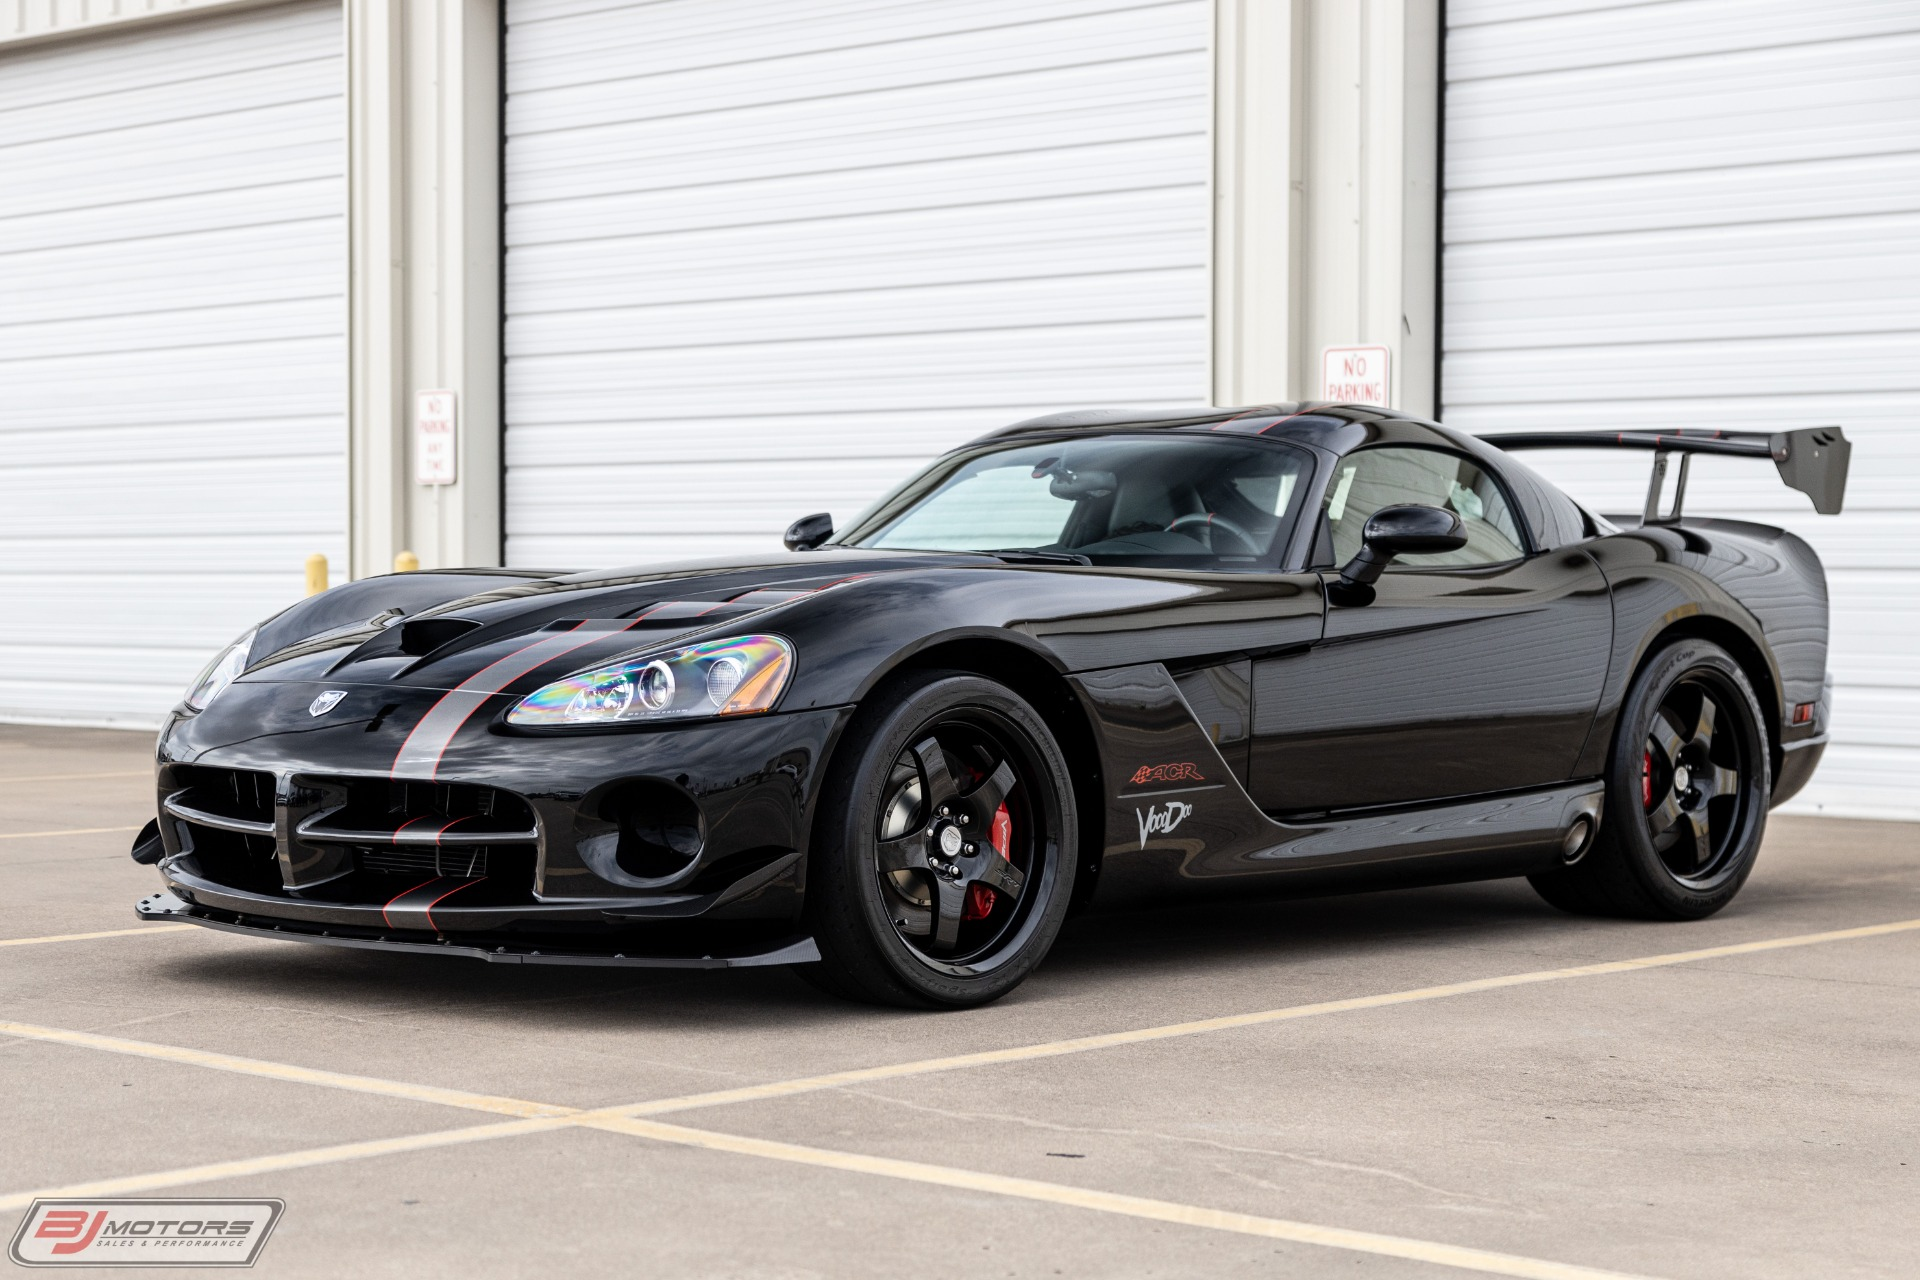 Used-2010-Dodge-Viper-ACR-Voodoo-Edition